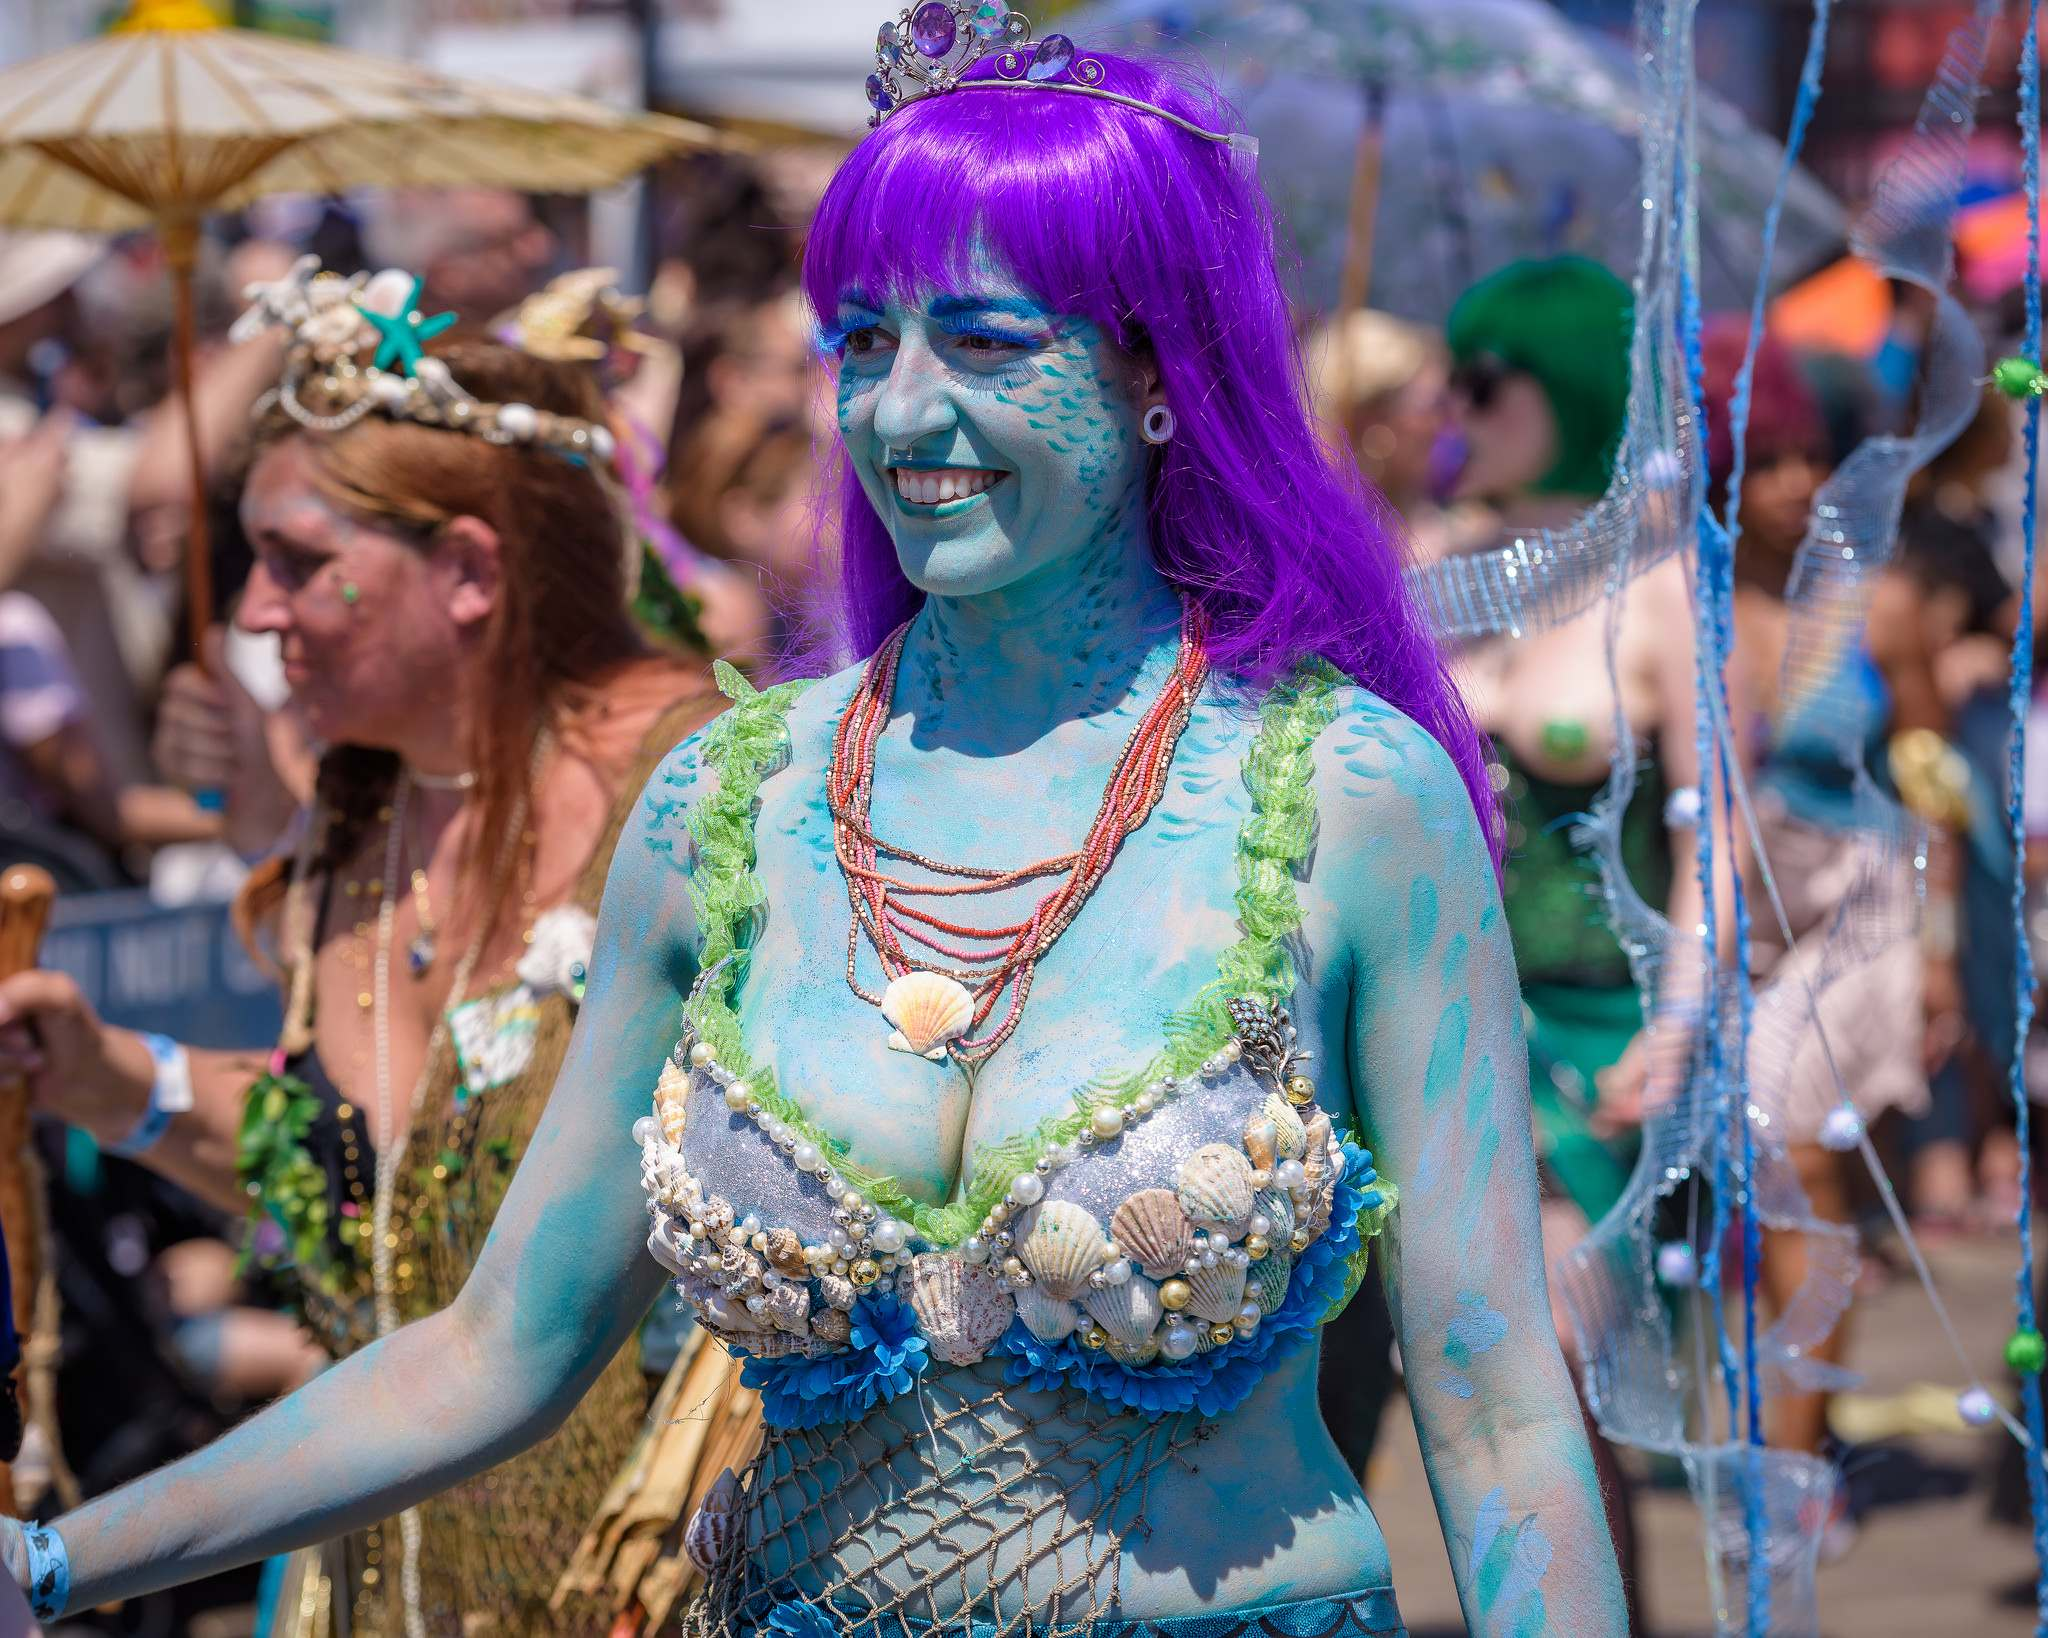 mermaid parade 2016 Coney Island Mermaid Parade in NYC